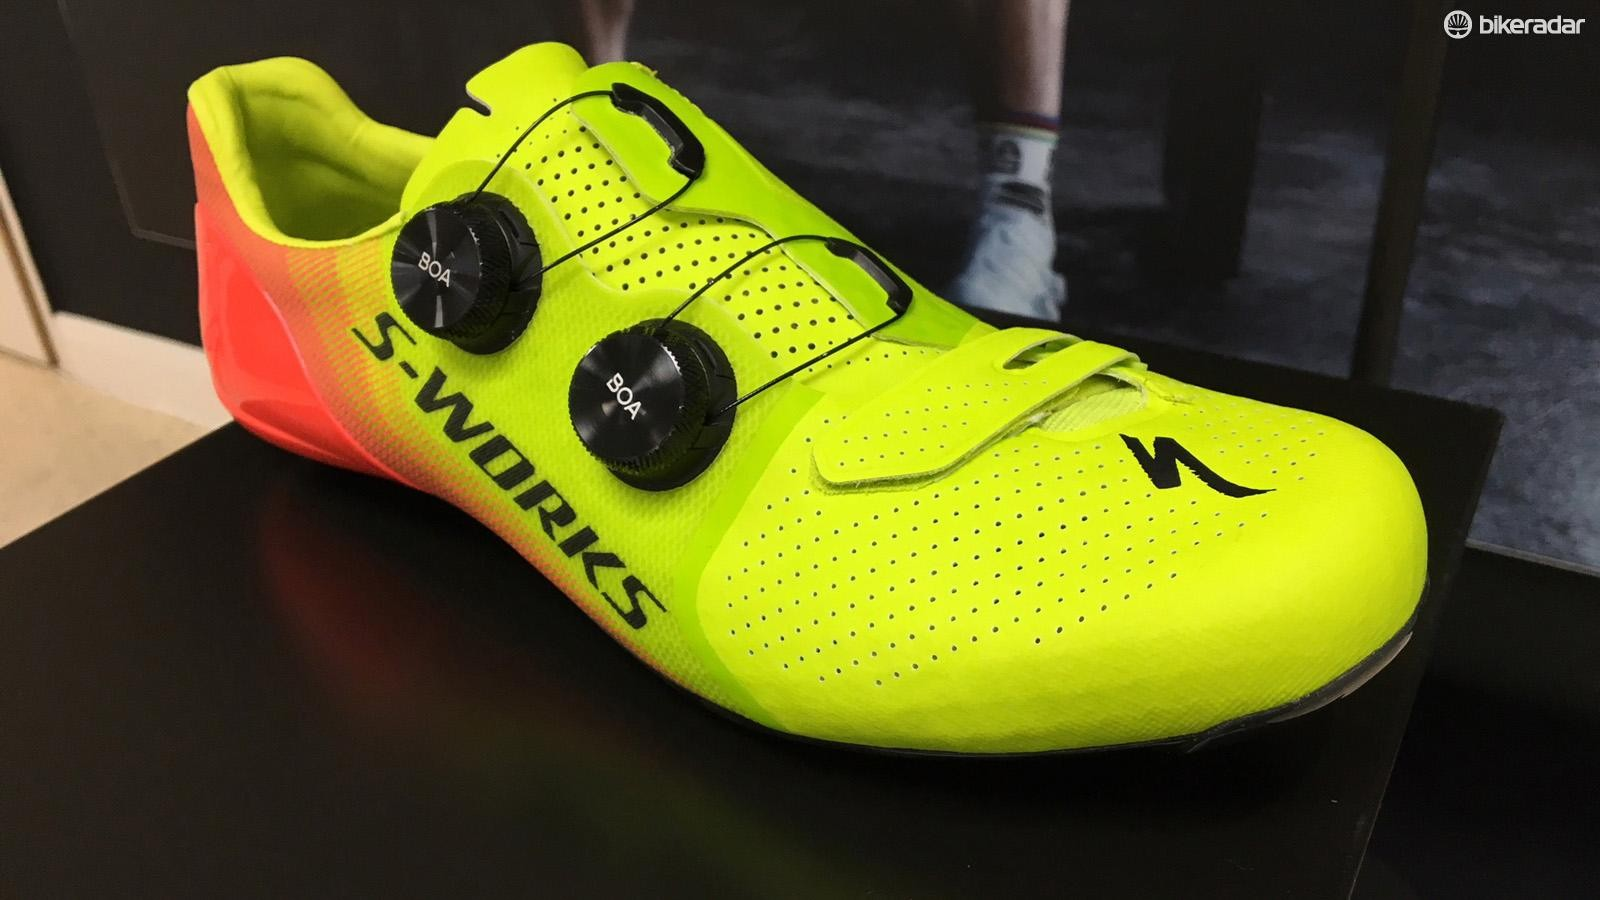 The new Specialized S-Works 7 shoes in the Hyper Acid Lava finish